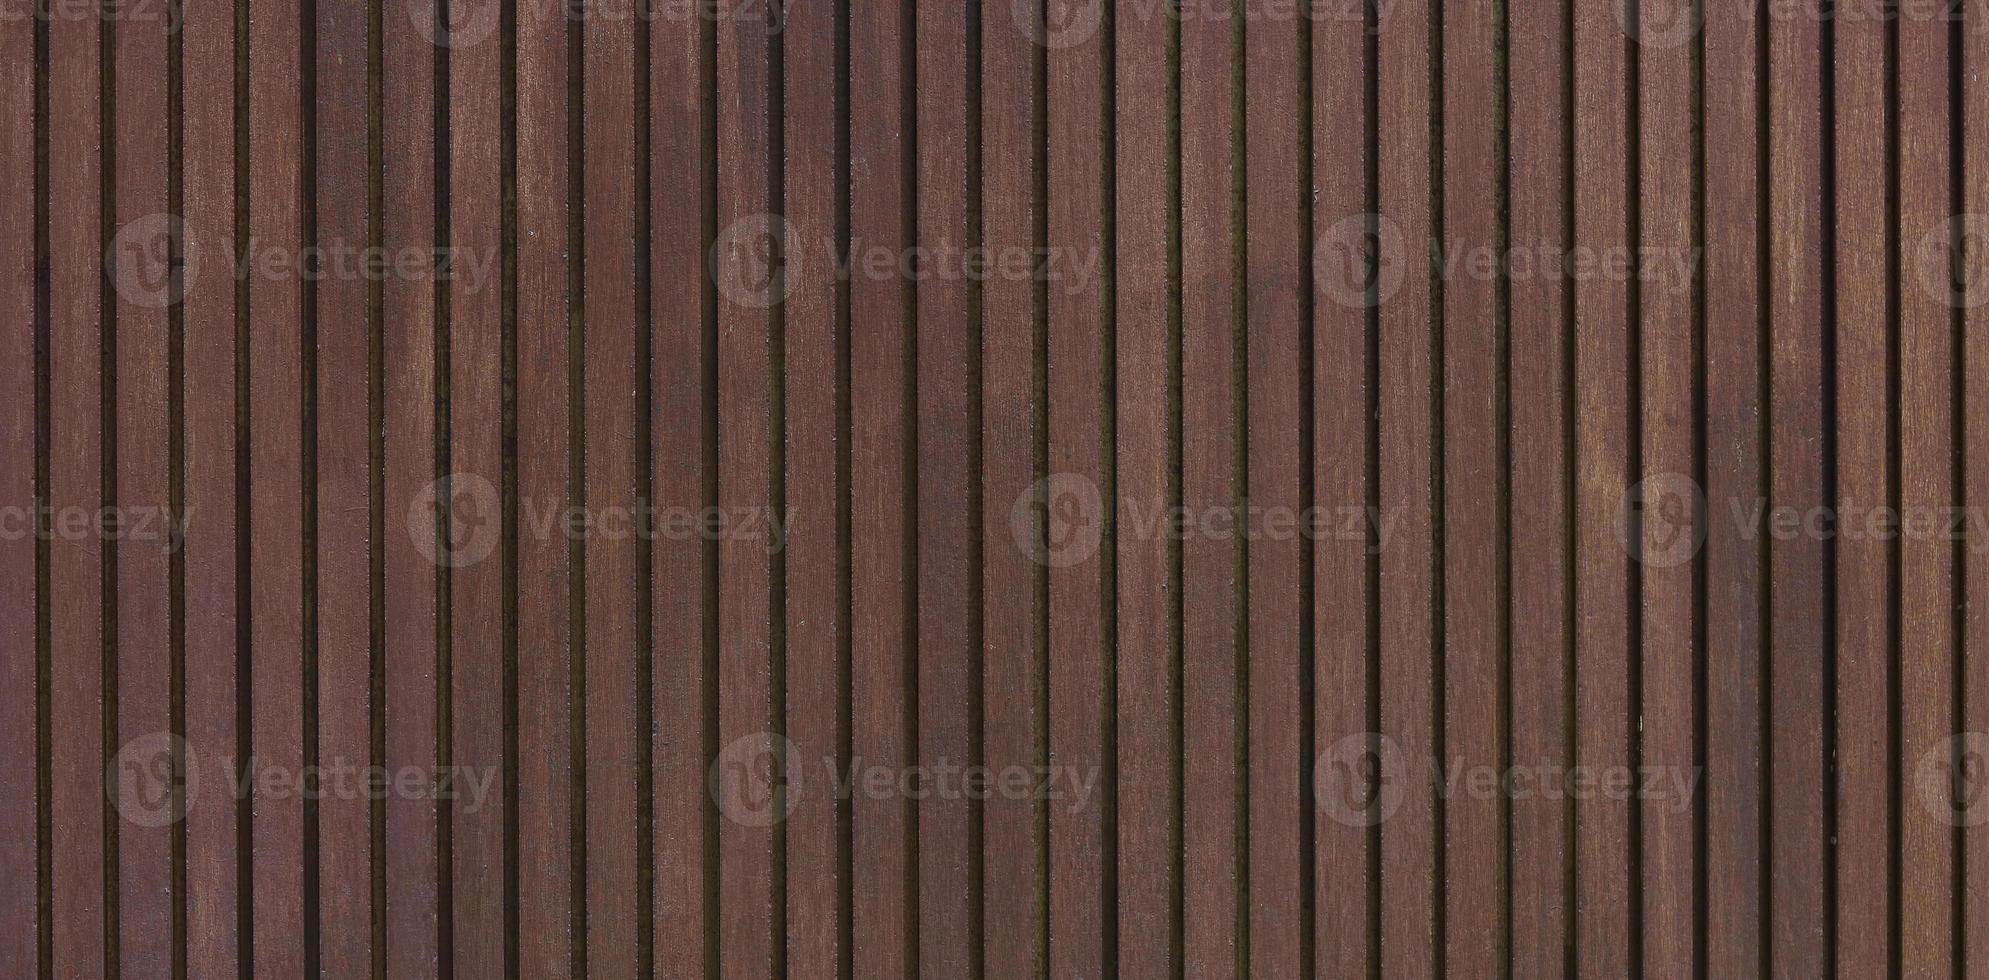 Wood texture wall background photo